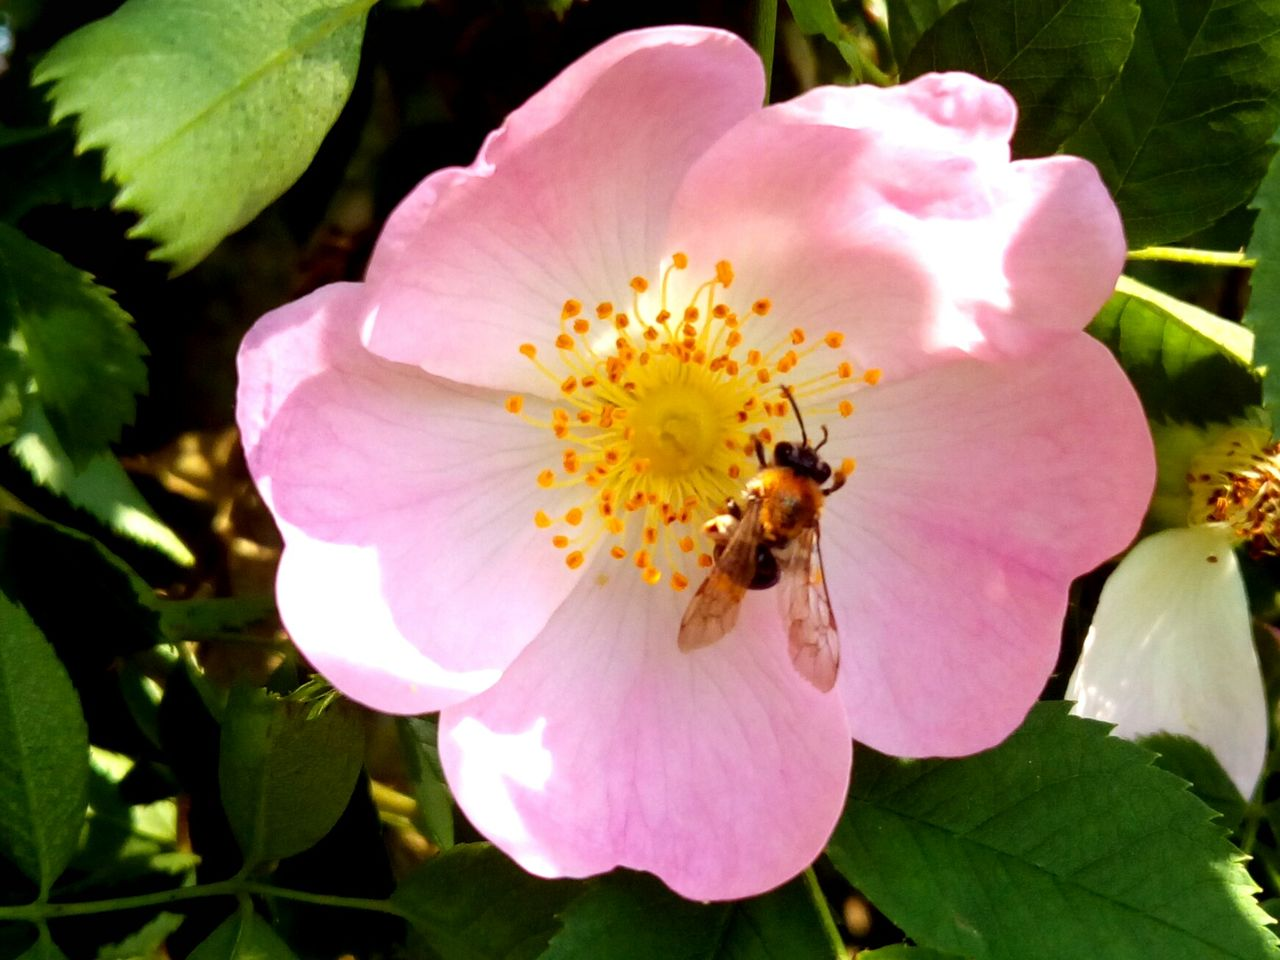 flower, petal, nature, bee, flower head, insect, beauty in nature, plant, growth, one animal, animal themes, fragility, pink color, pollen, animals in the wild, no people, outdoors, wild rose, freshness, pollination, leaf, blooming, day, close-up